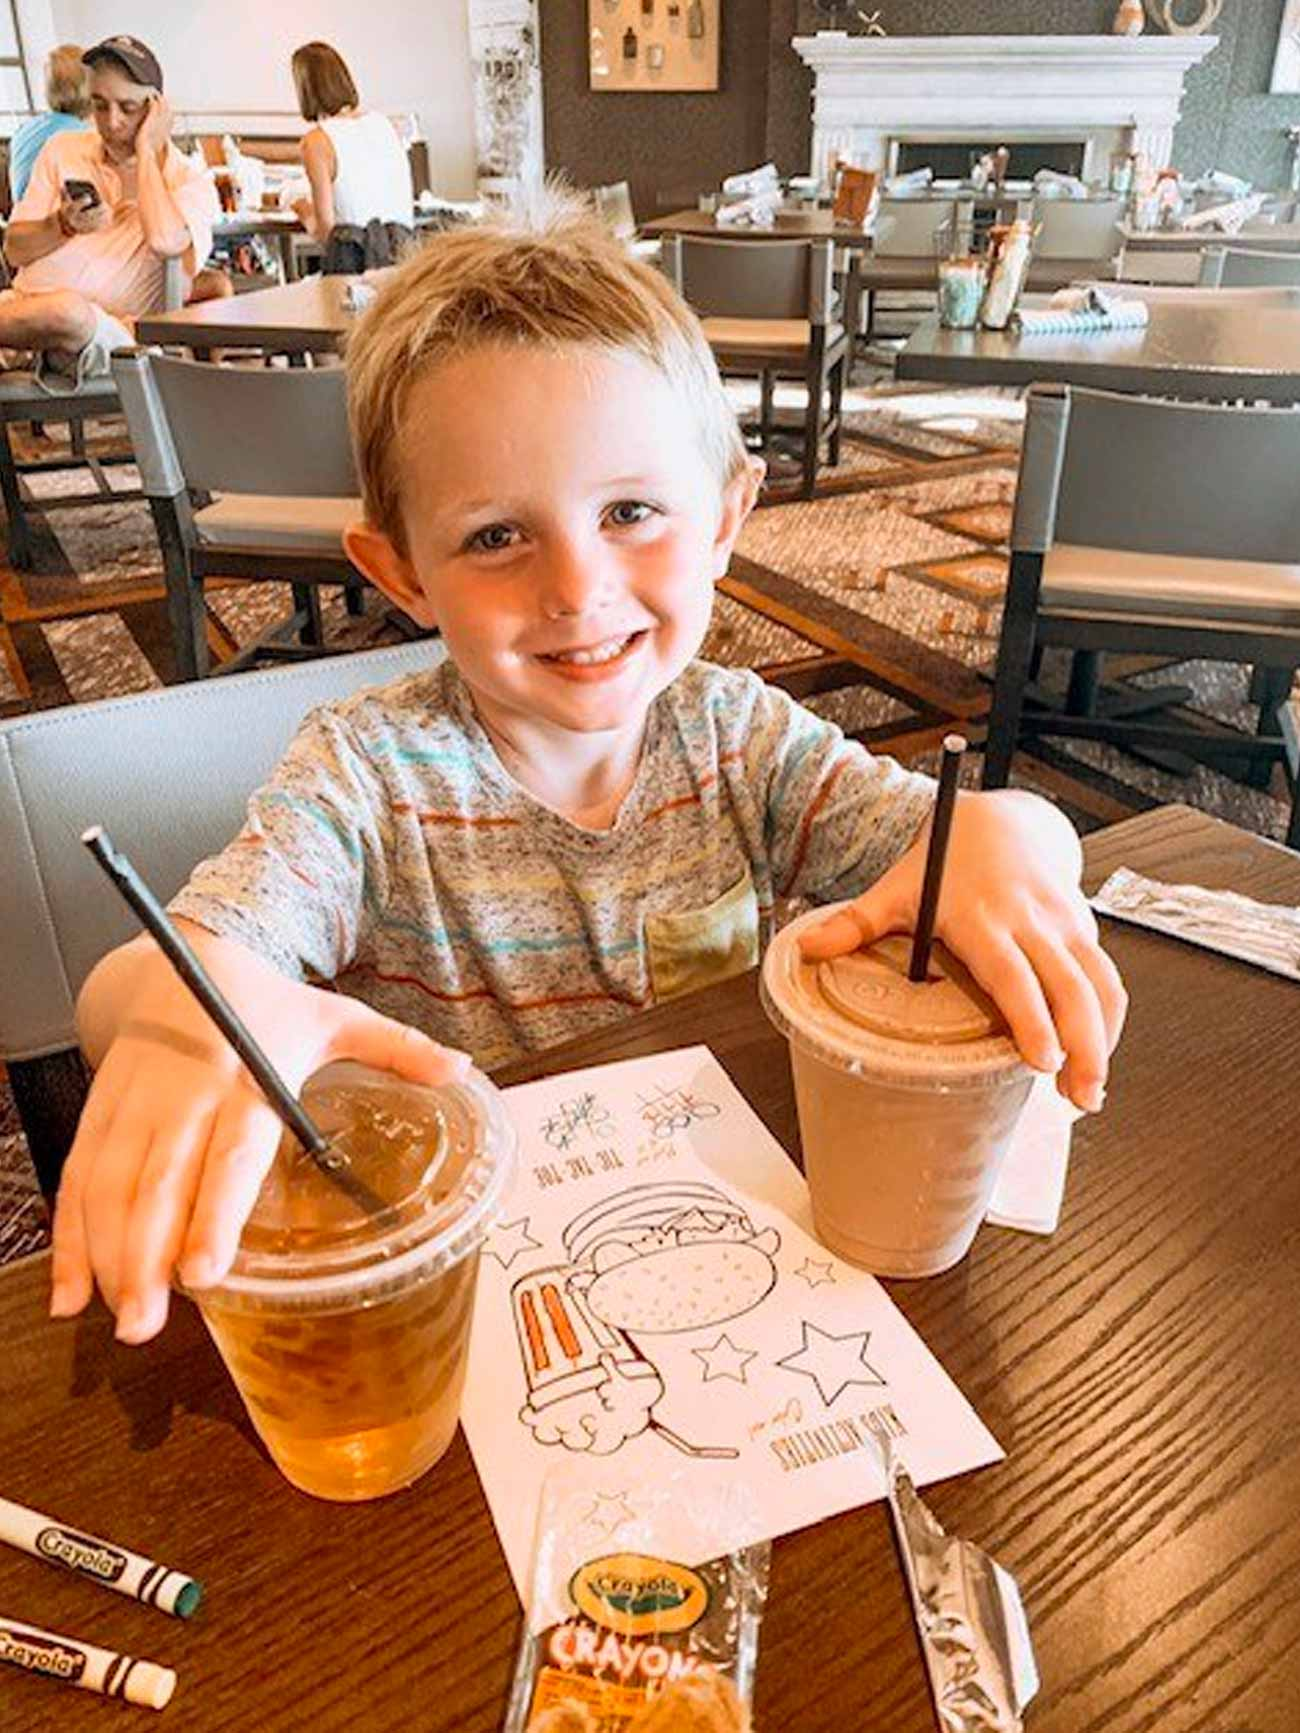 young boy holds both of his drinks at restaurant, smiling proudly